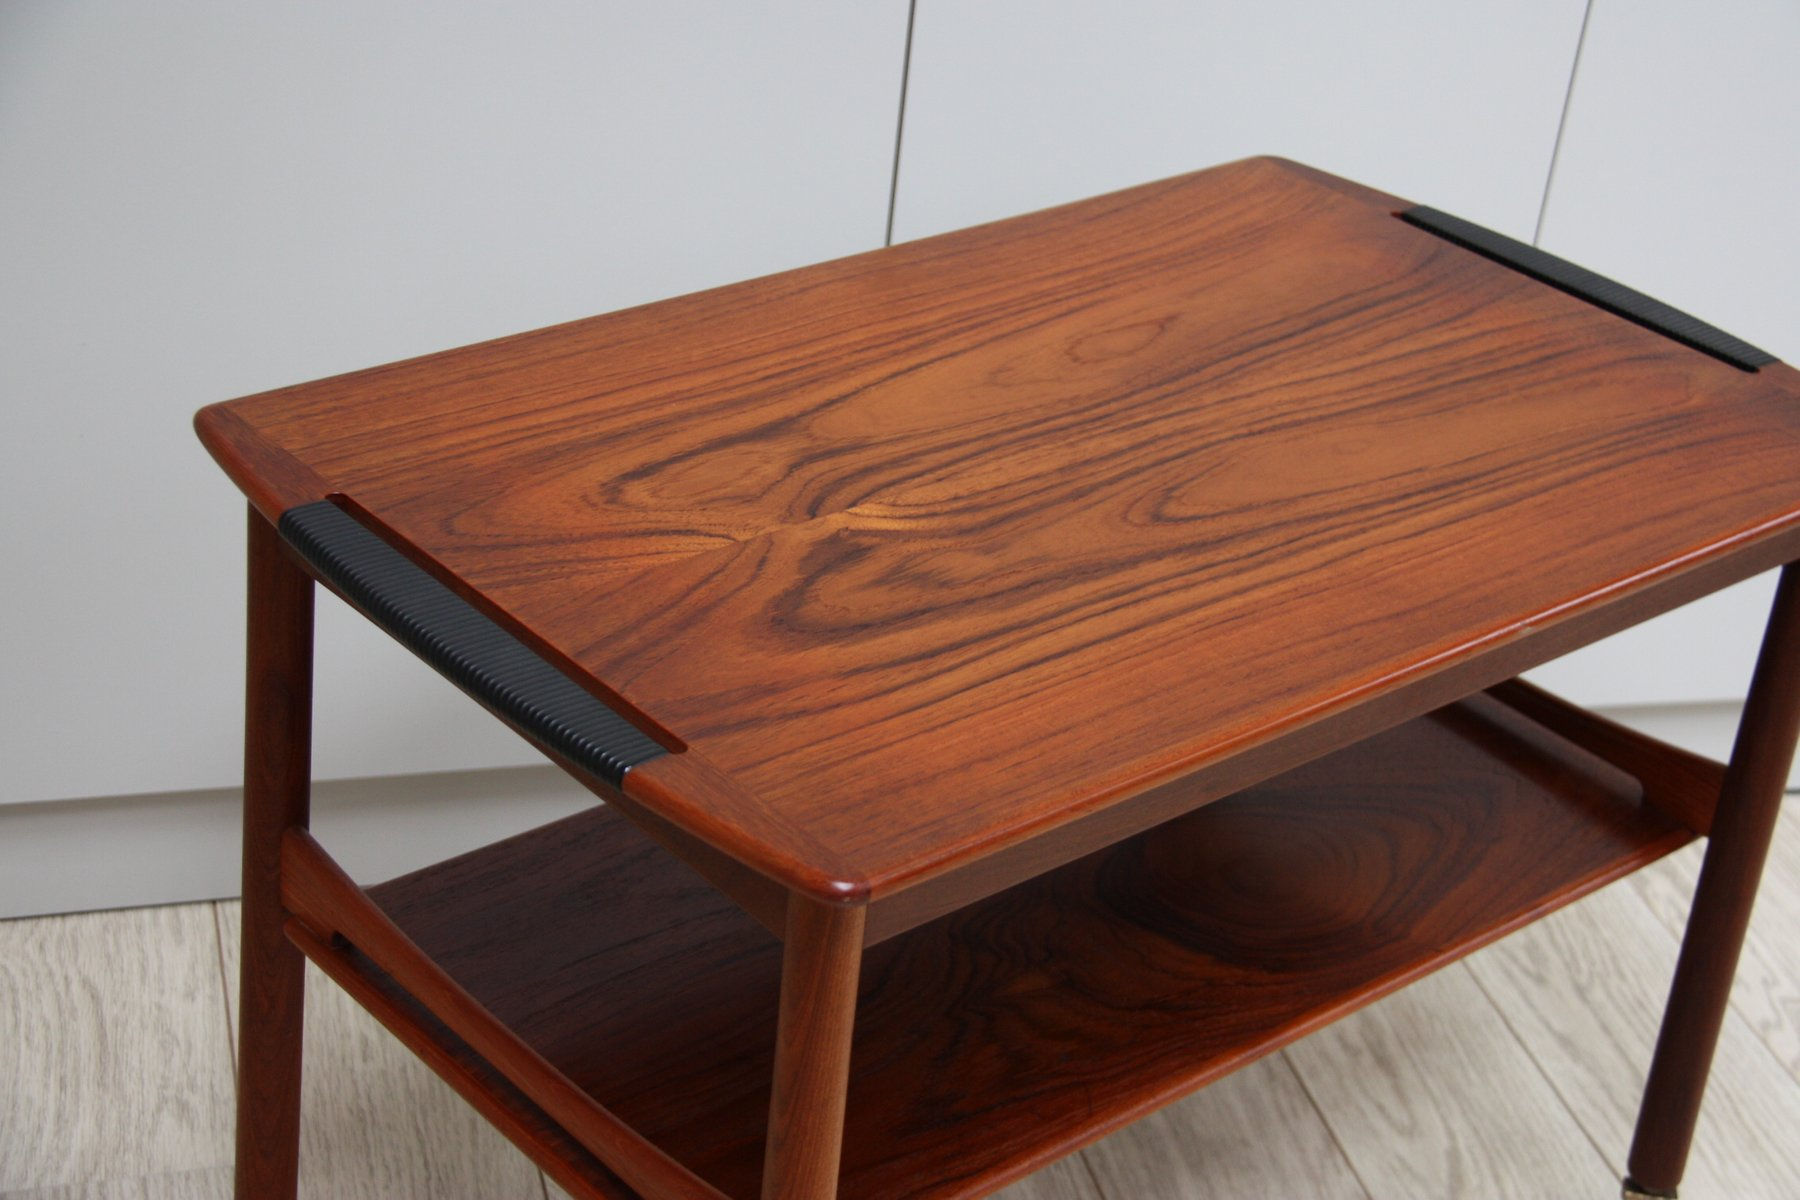 Vintage Coffee Table in Rosewood on Wheels 1950s for sale at Pamono